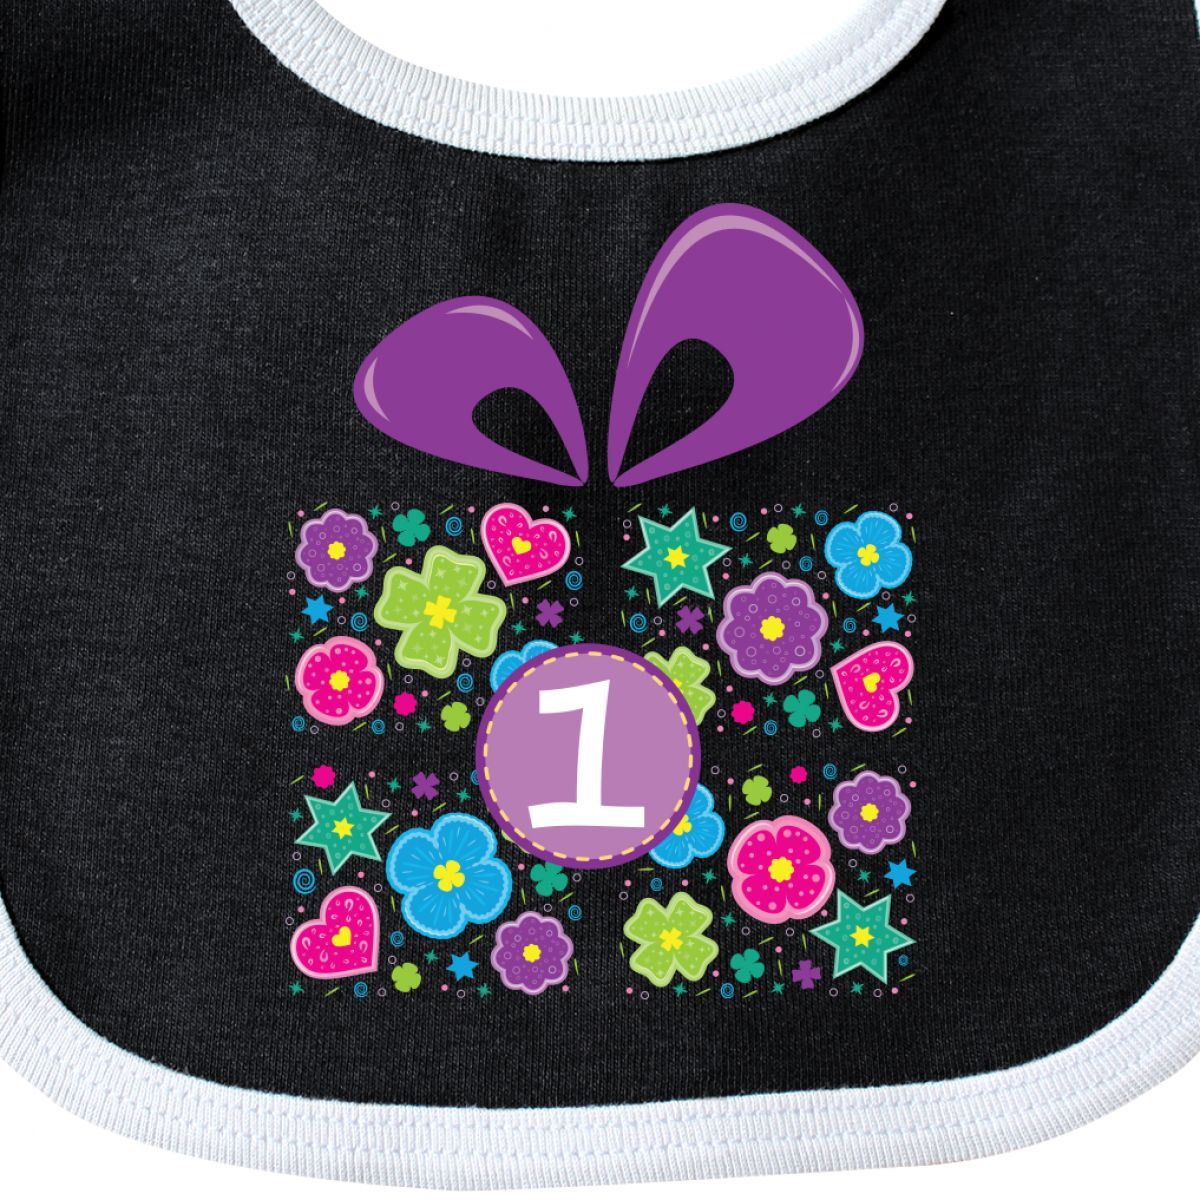 Details About Inktastic Babys 1st Birthday Present Baby Bib Party First Kids One Year Old 1